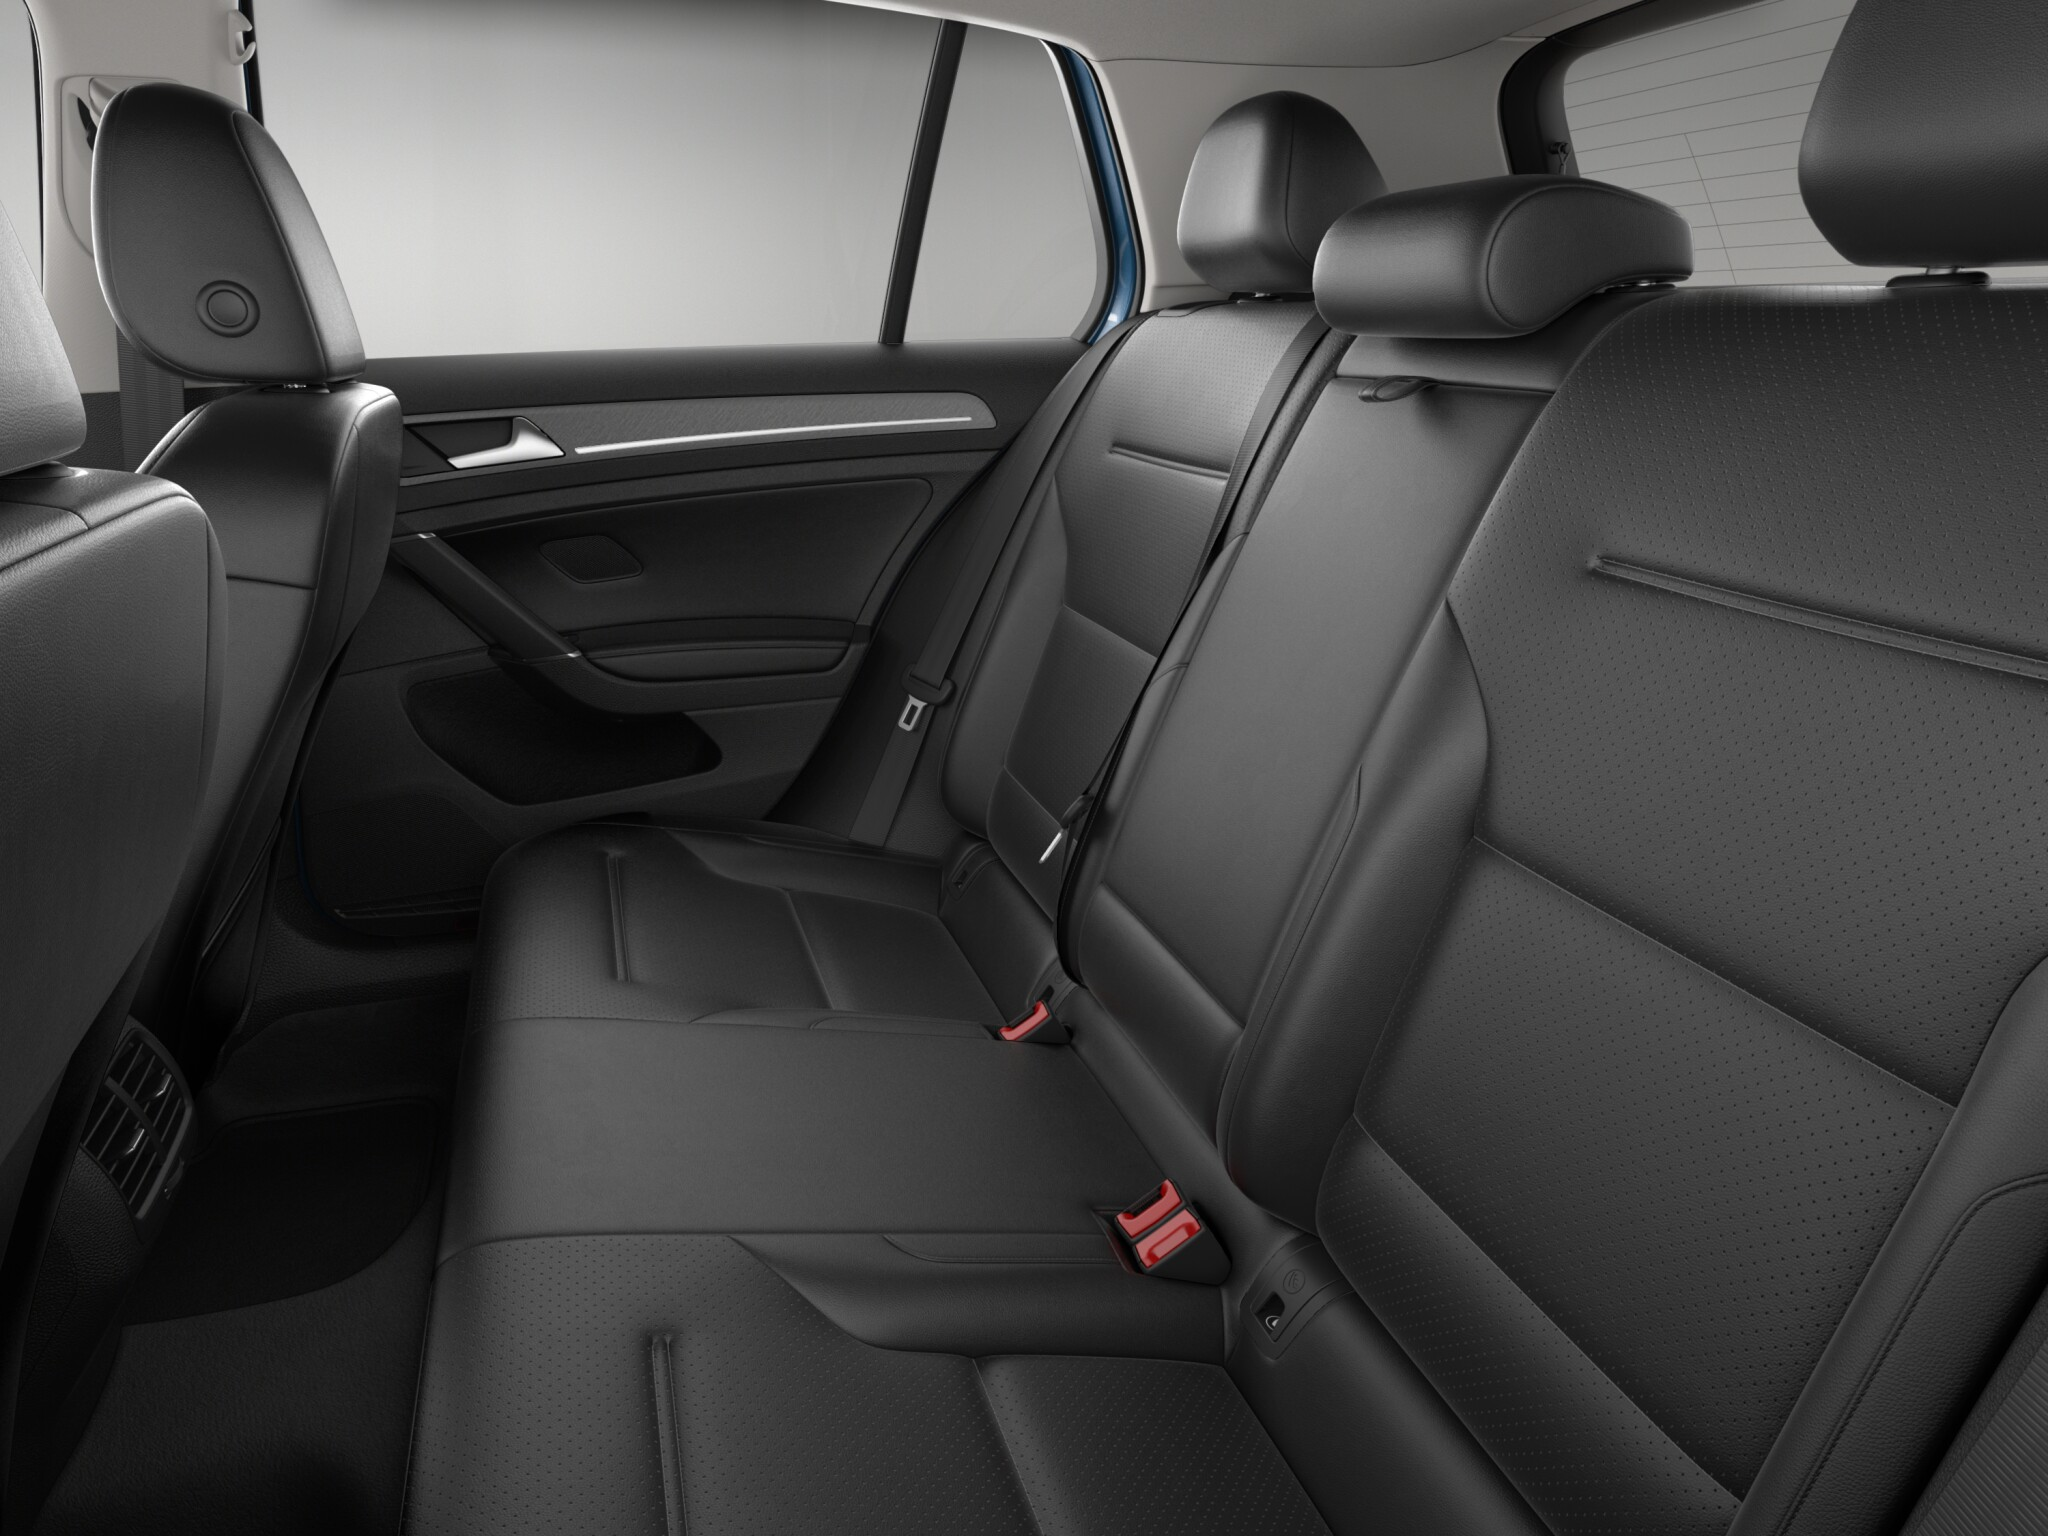 2016 Volkswagen E Golf Rear Seats Interior (Photo 10 of 11)